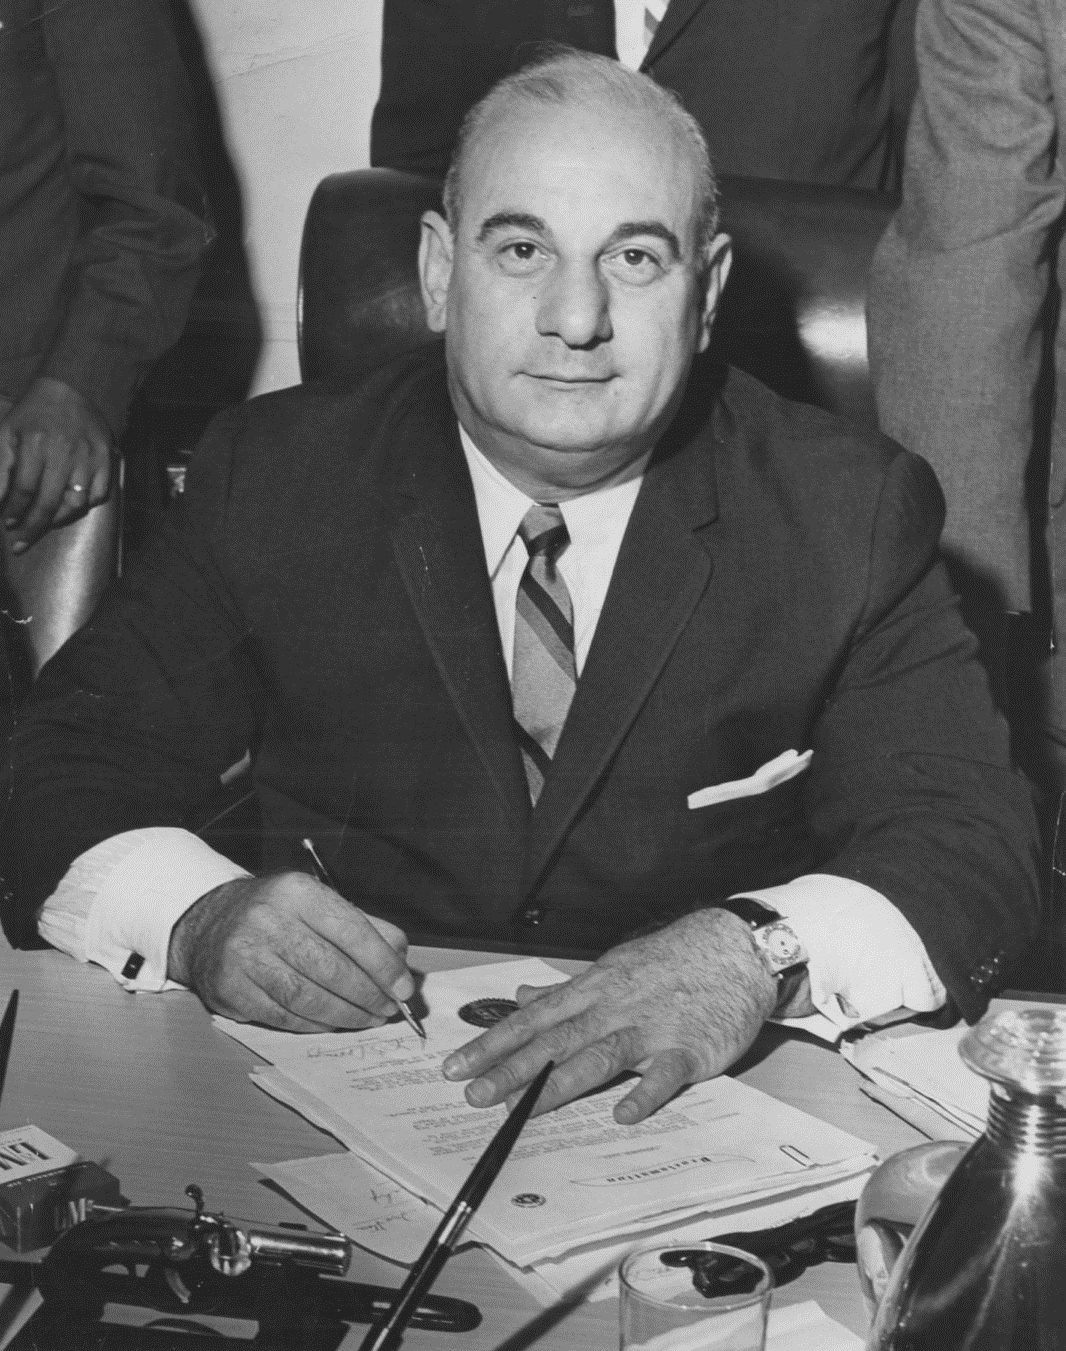 Mayor Addonizio at Desk